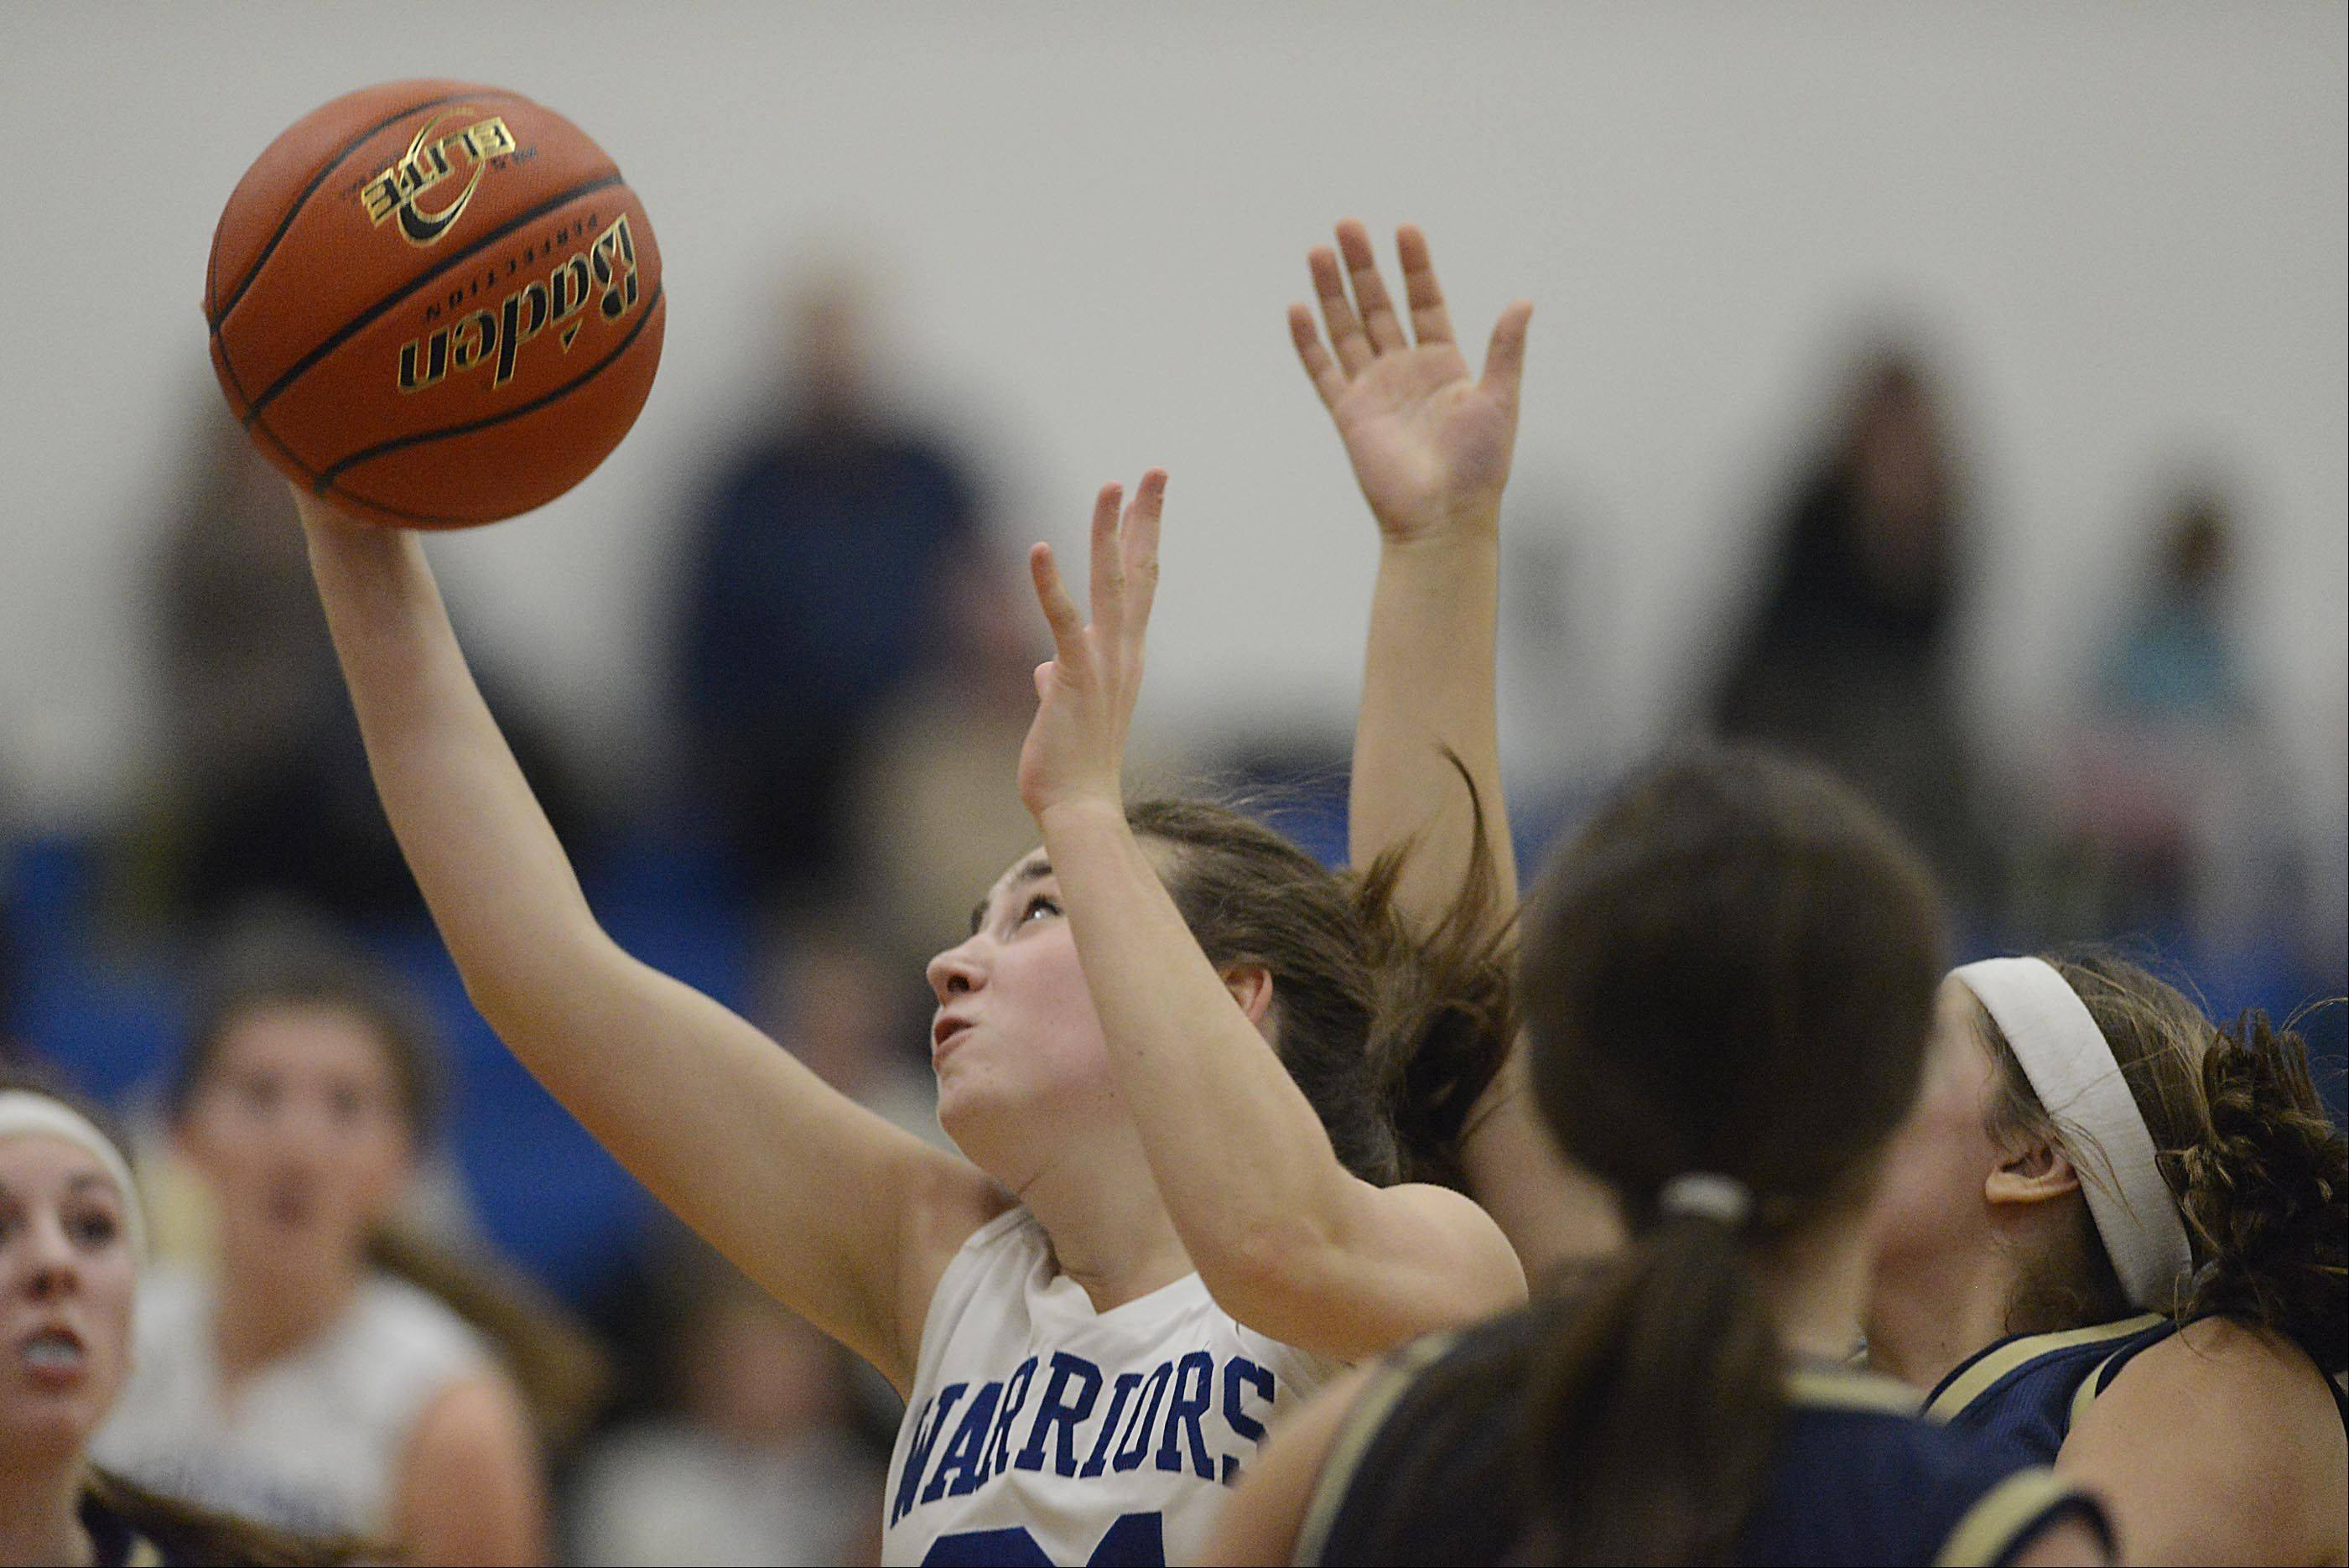 Images: Westminster Christian vs. Ottawa Marquette, girls basketball